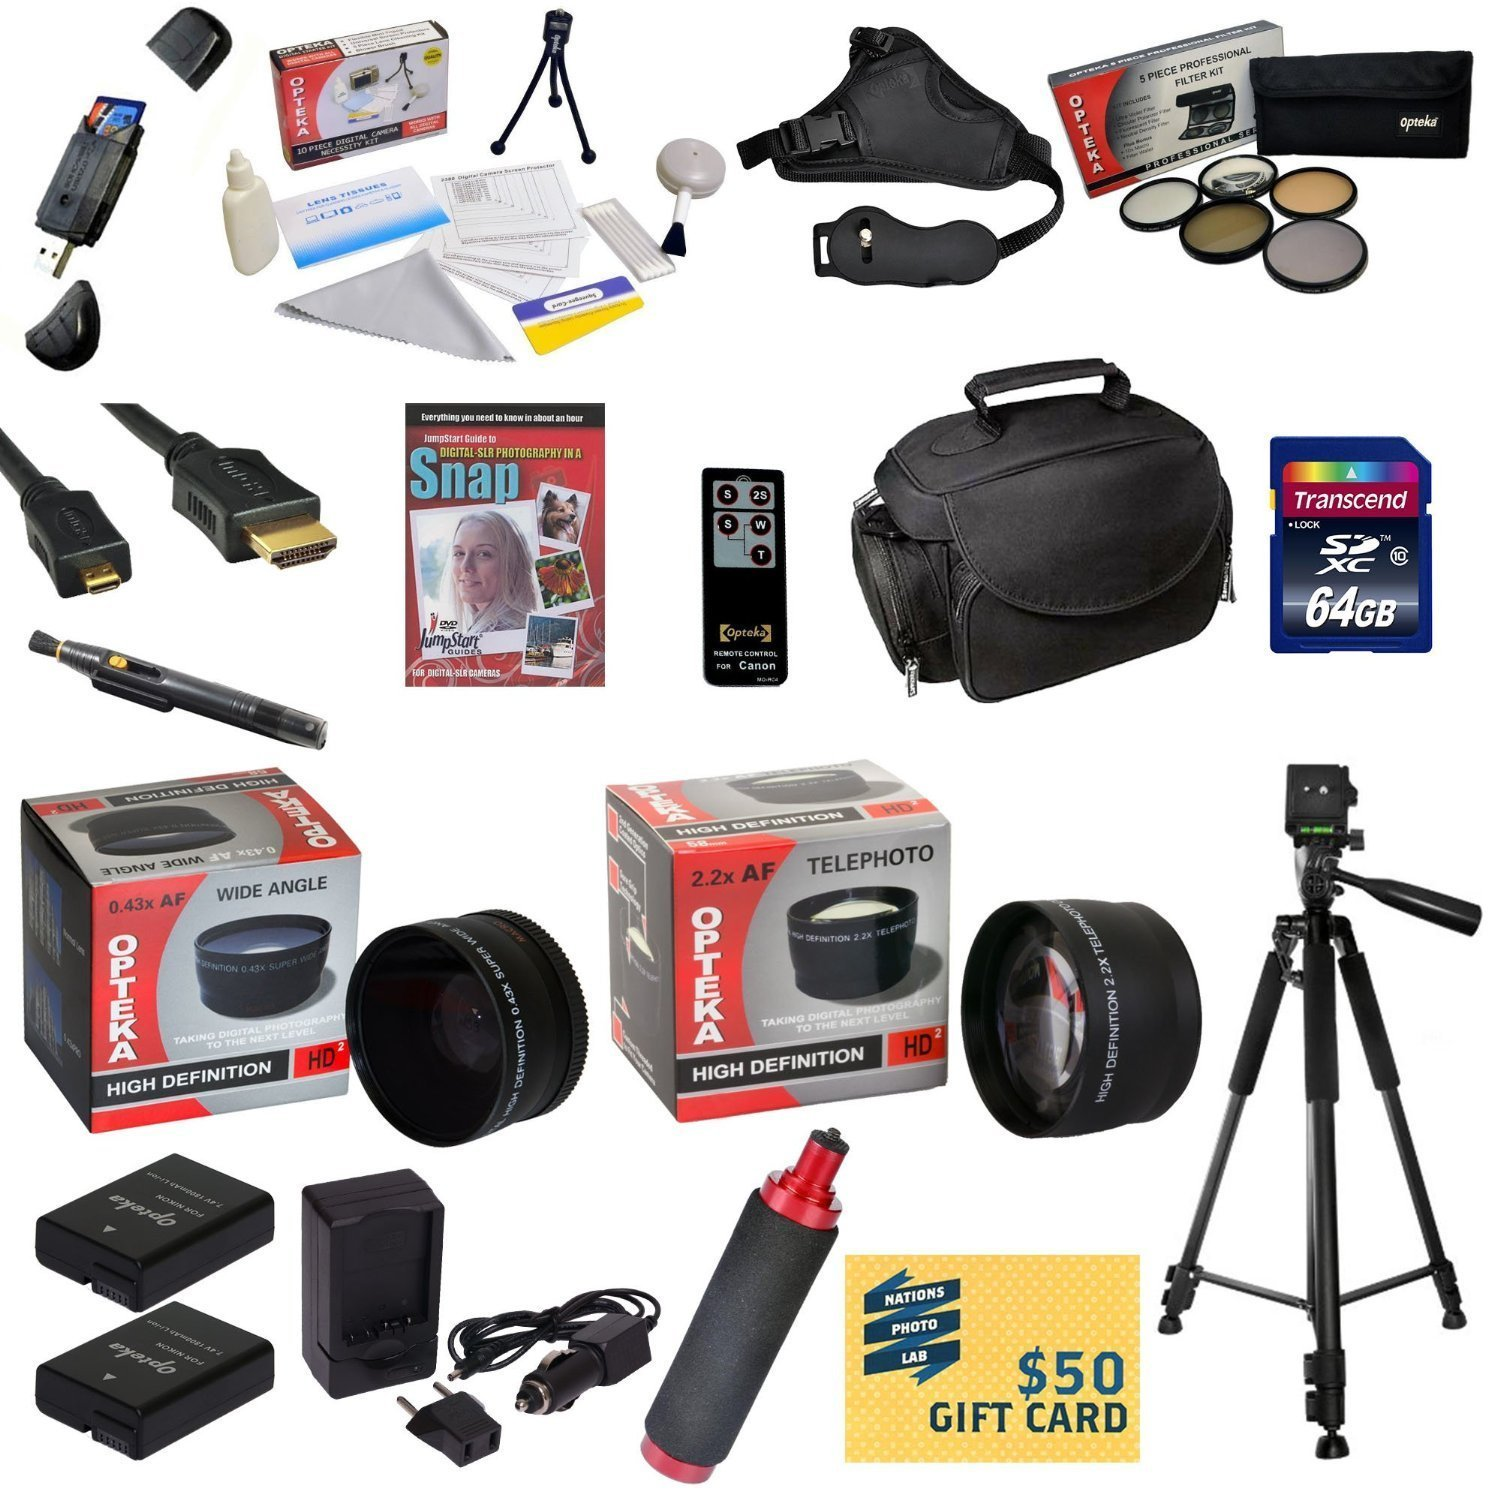 47th Street Photo Ultimate Accessory Kit for the Nikon D40, D40x, D60, D3000, D5000 - Kit Includes: 64GB High-Speed SDXC Card + Card Reader + 2 Extended Life Batteries + Travel Charger + 52MM 0.43x HD2 Wide Angle Macro Fisheye Lens + 52MM 2.2x HD2 AF Tele by 47th Street Photo